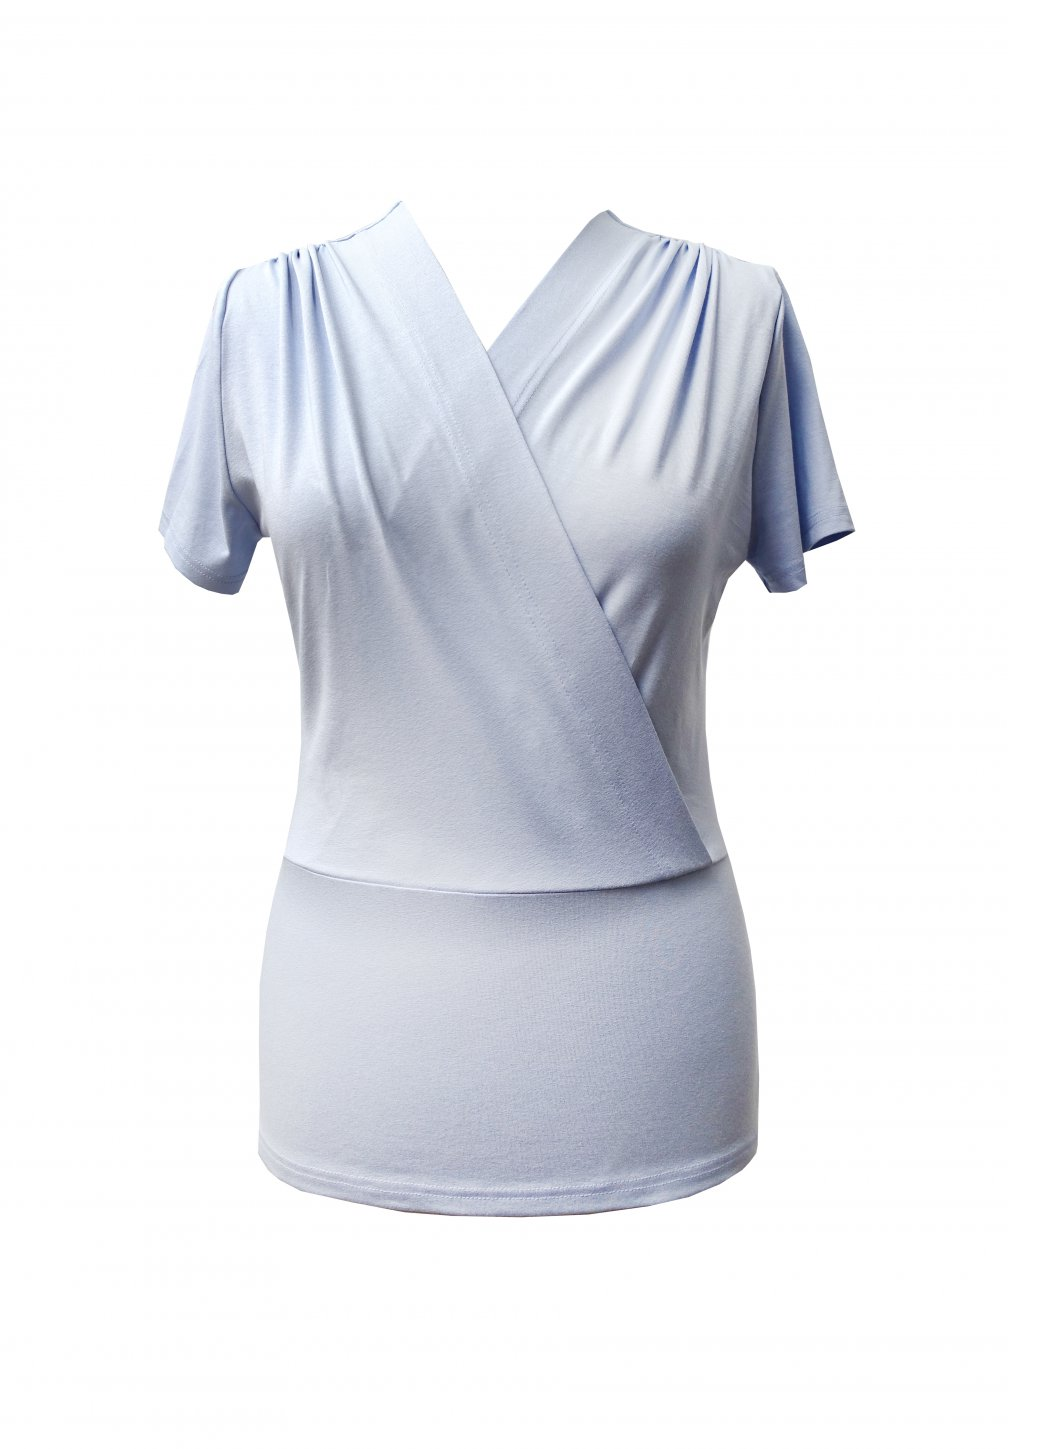 Elegant t-shirt Ontario Female dress